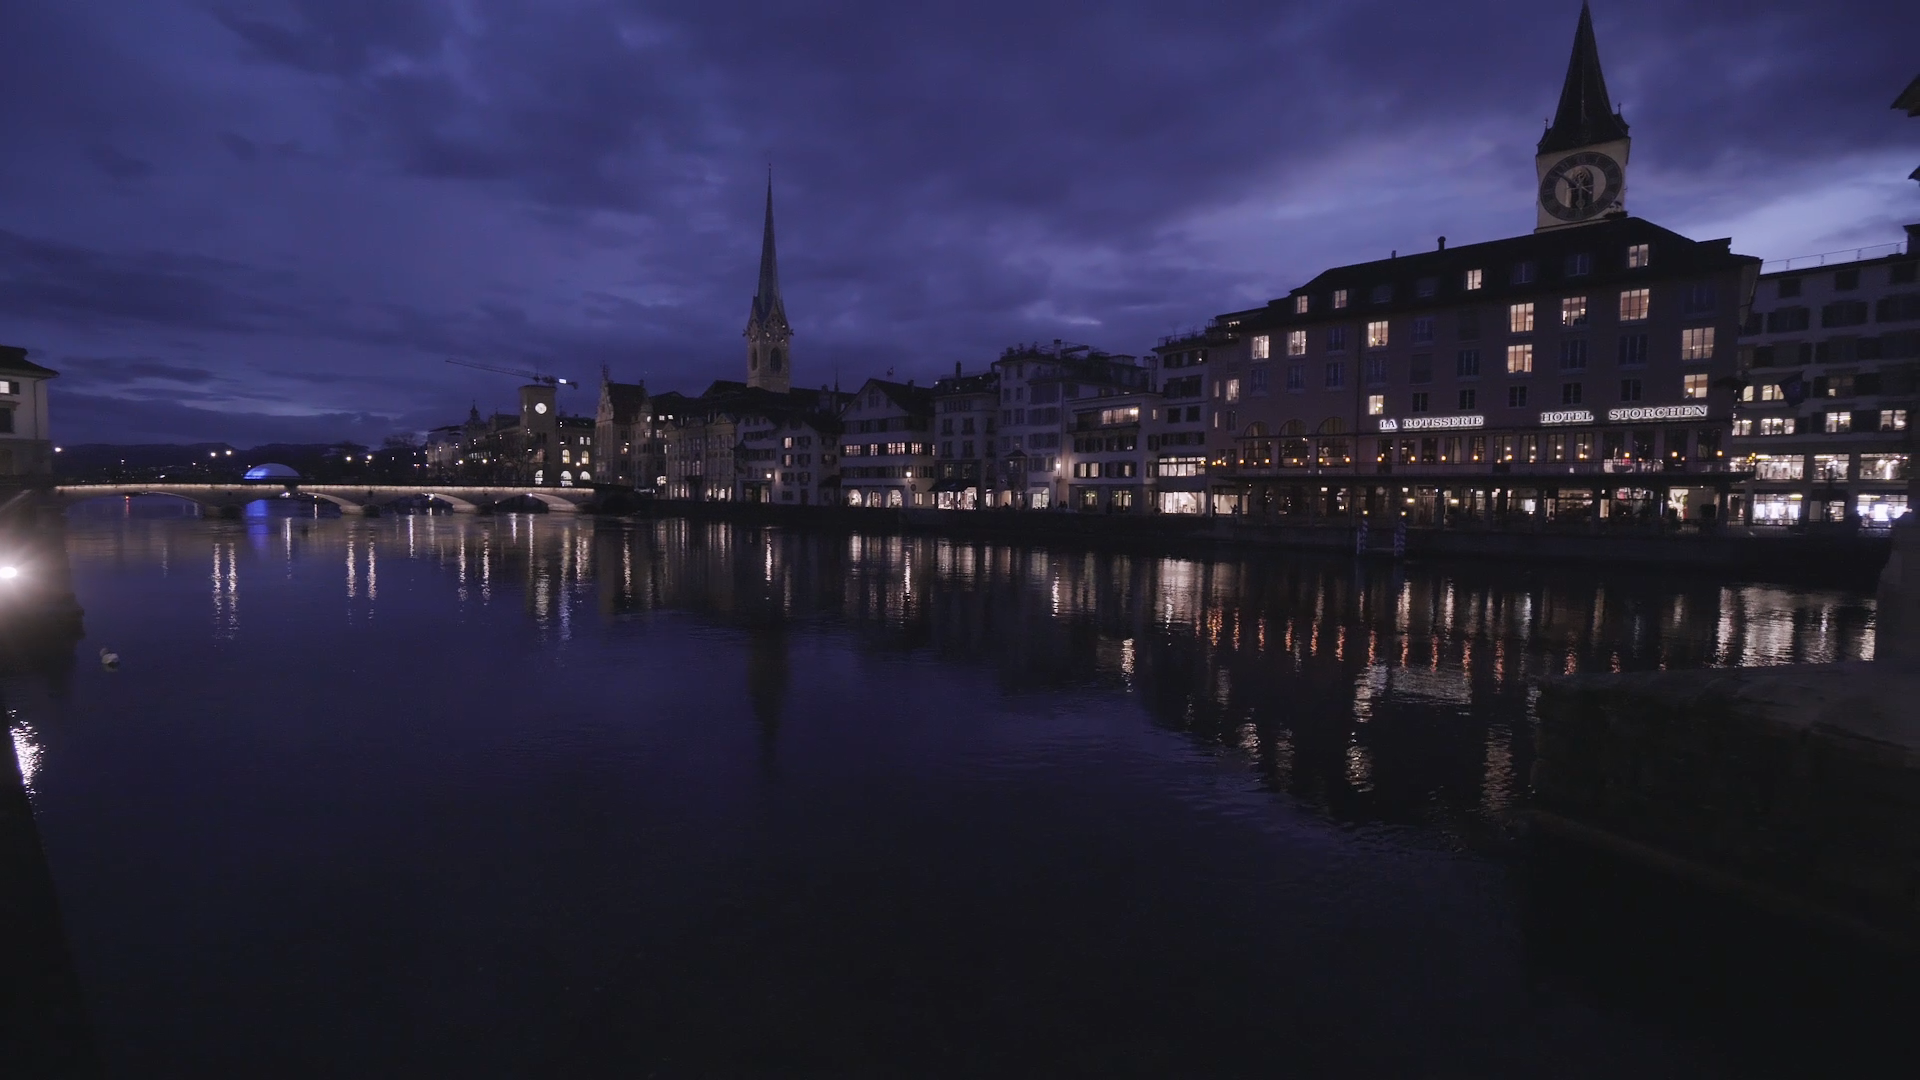 Zürich by Night, seen from a bridge over the river